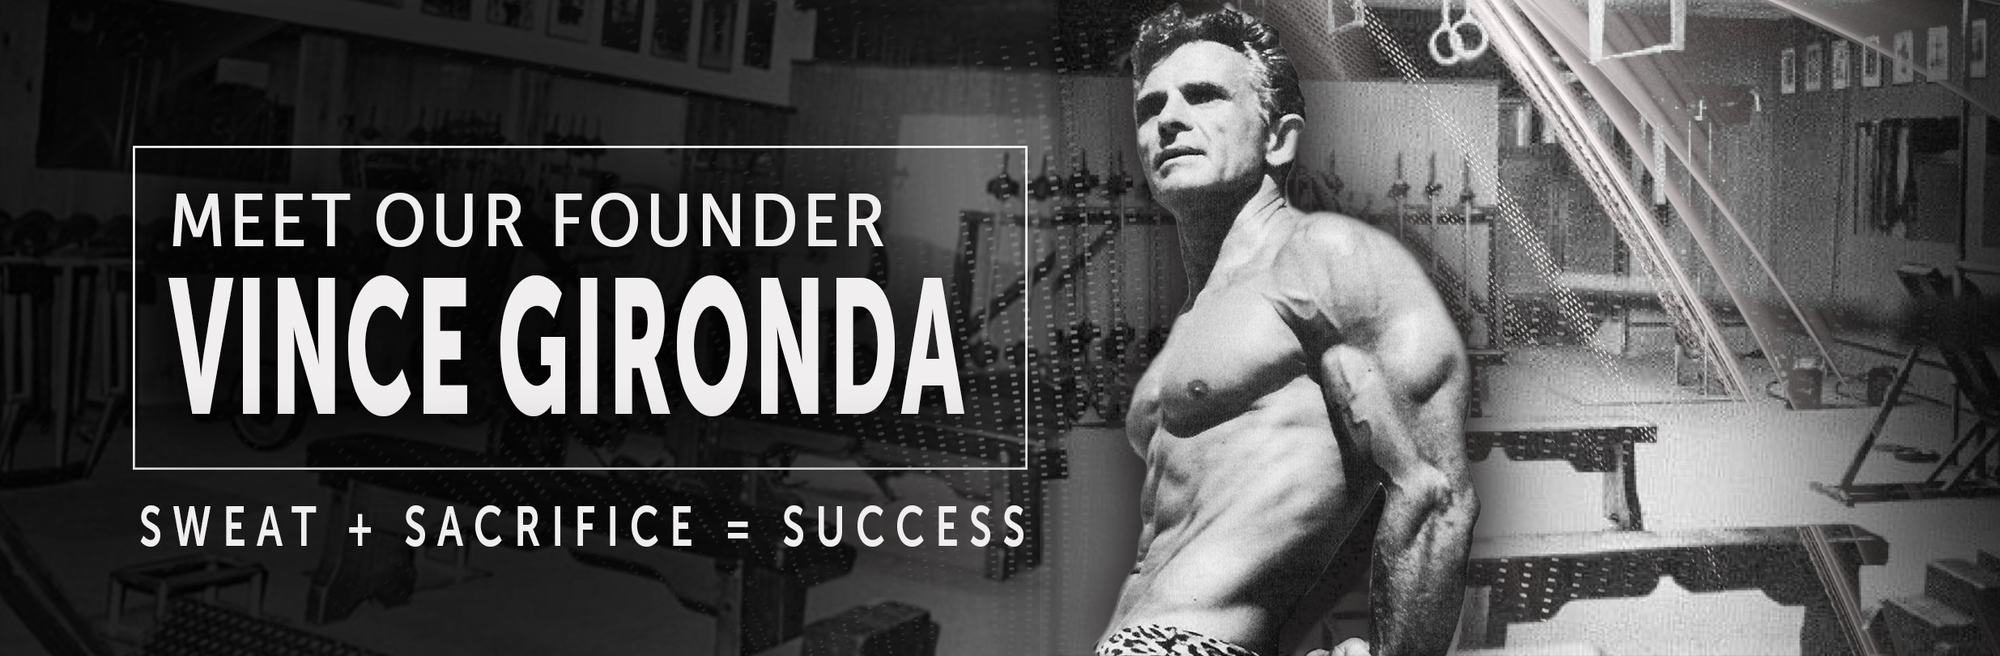 "Vince ""Iron Guru"" Gironda was an American professional bodybuilder, personal trainer, author, co-founder of the supplement company NSP Nutrition, and owner of the celebrity-frequented Vince's Gym.   Champion Bodybuilders, Pro Athletes, and Hollywood Stars"